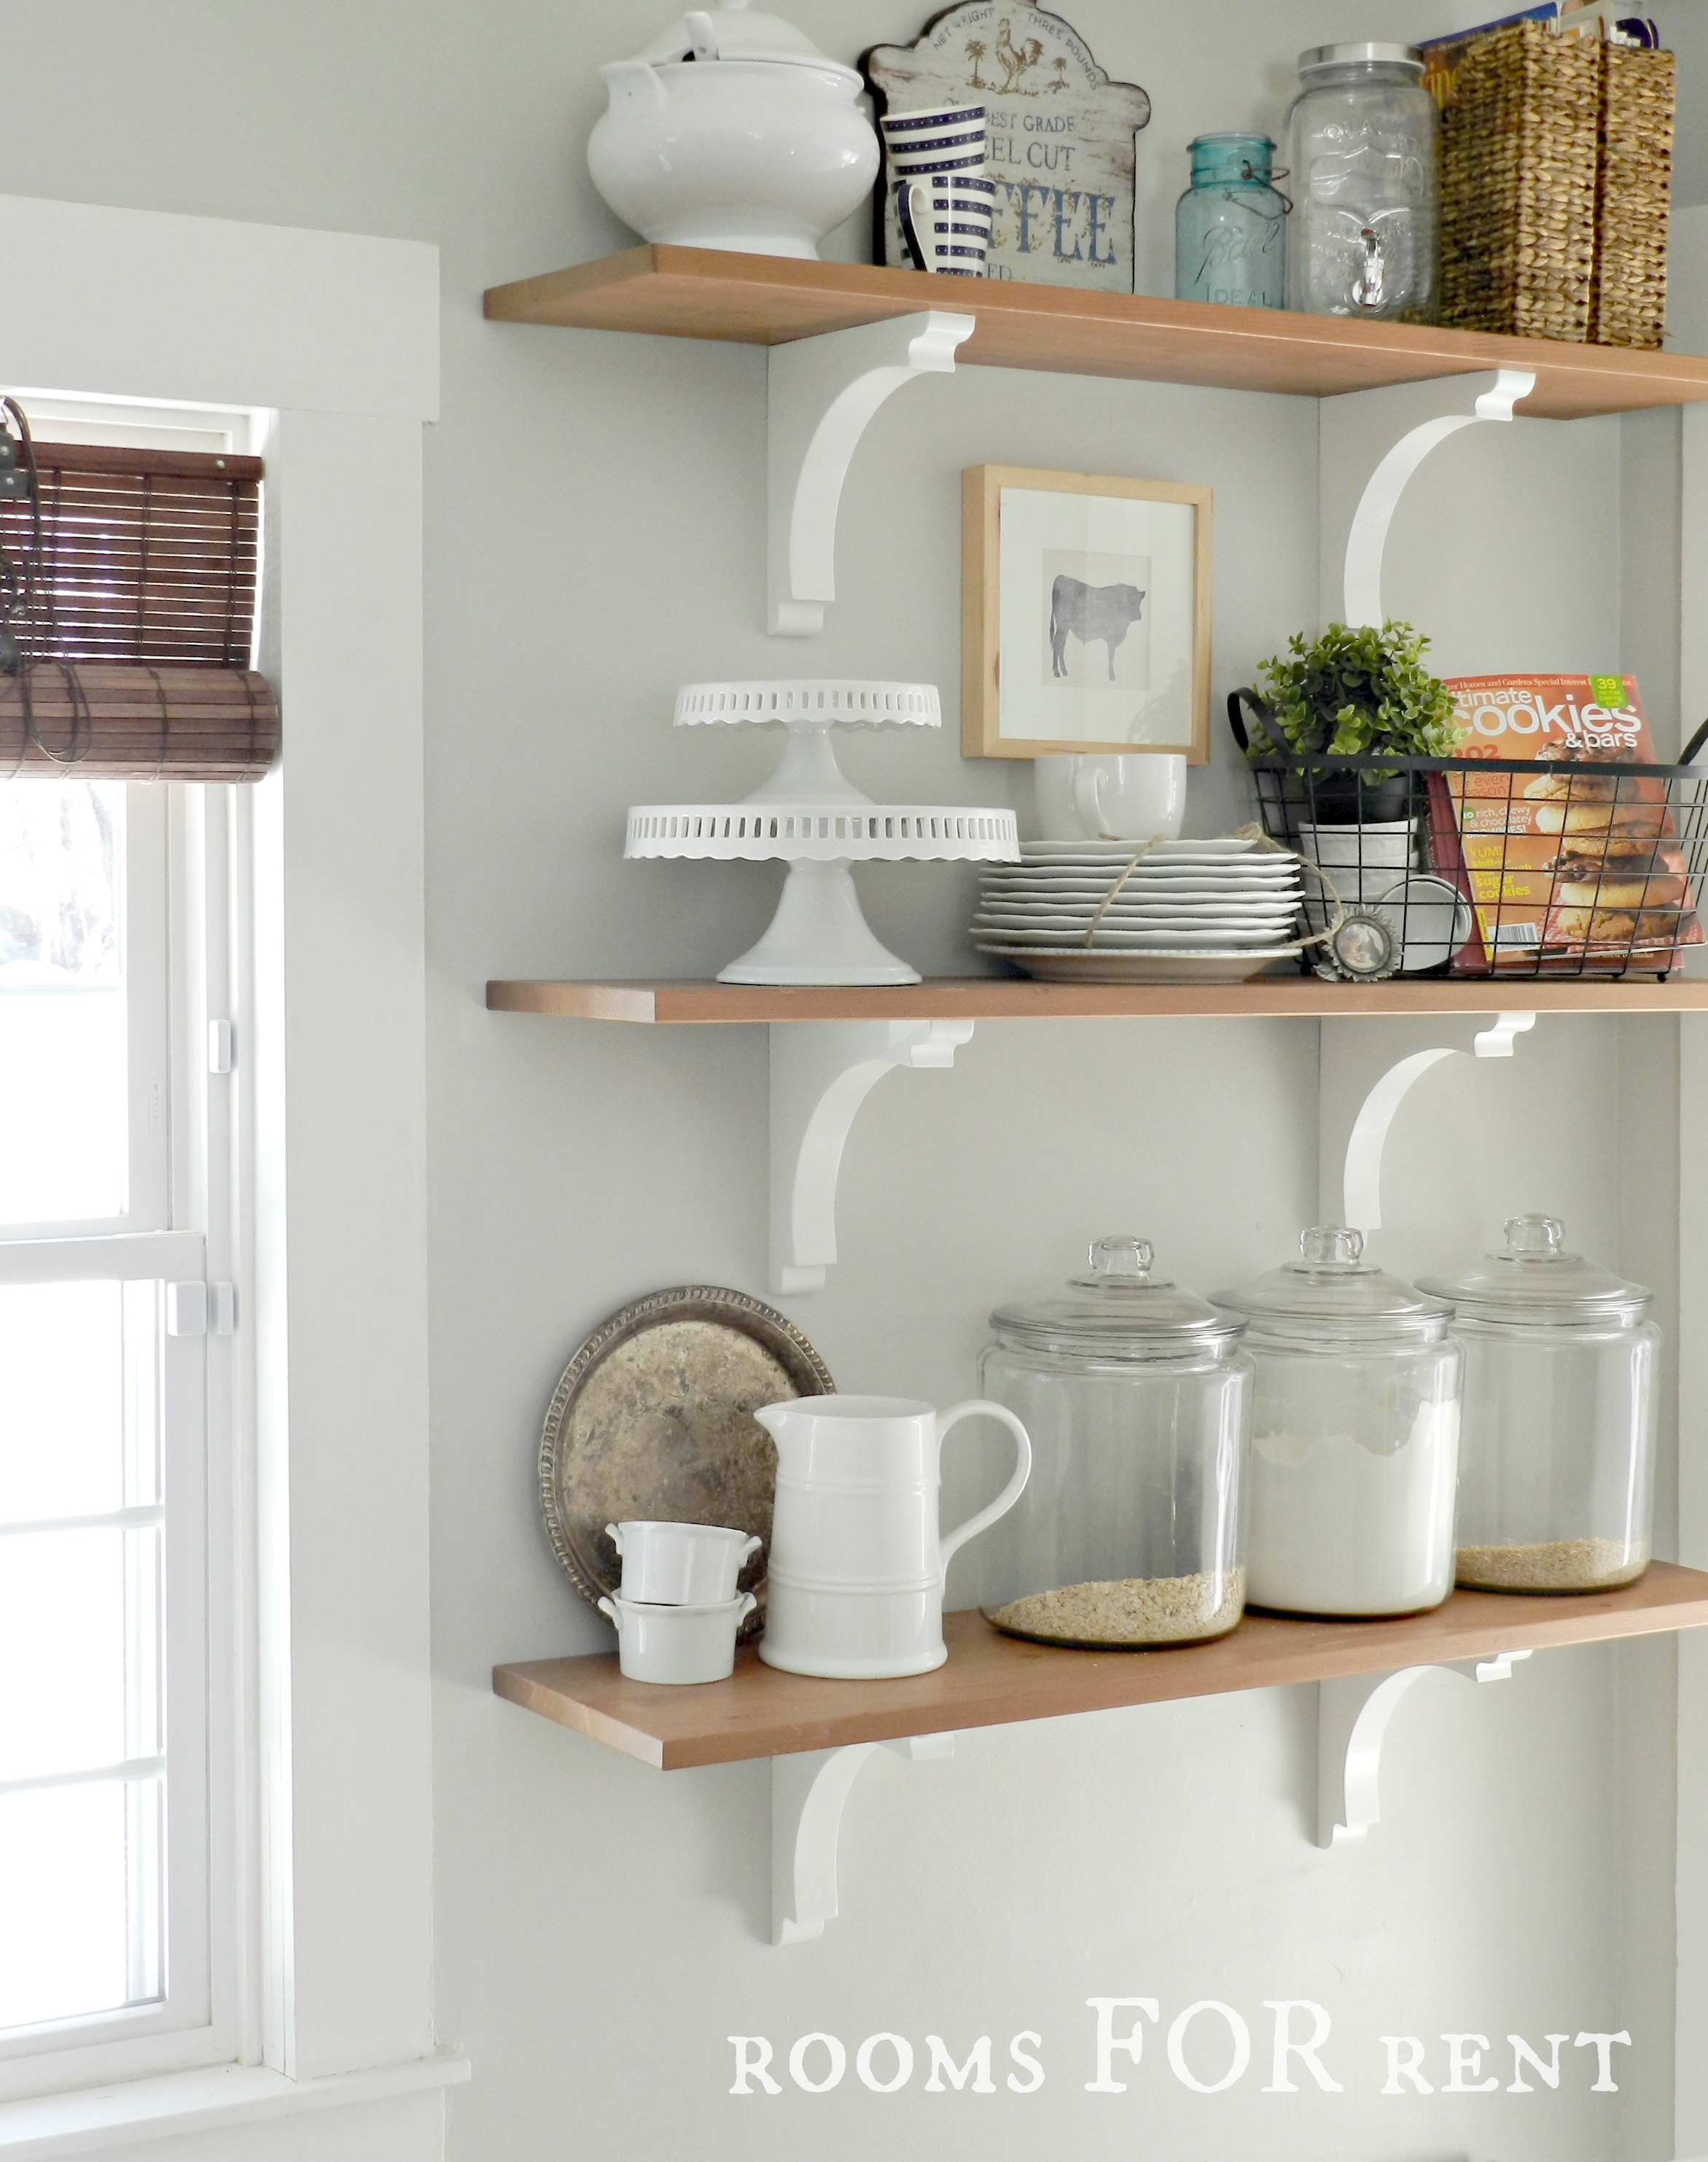 design kitchen open kutskokitchen shelves simple shelf